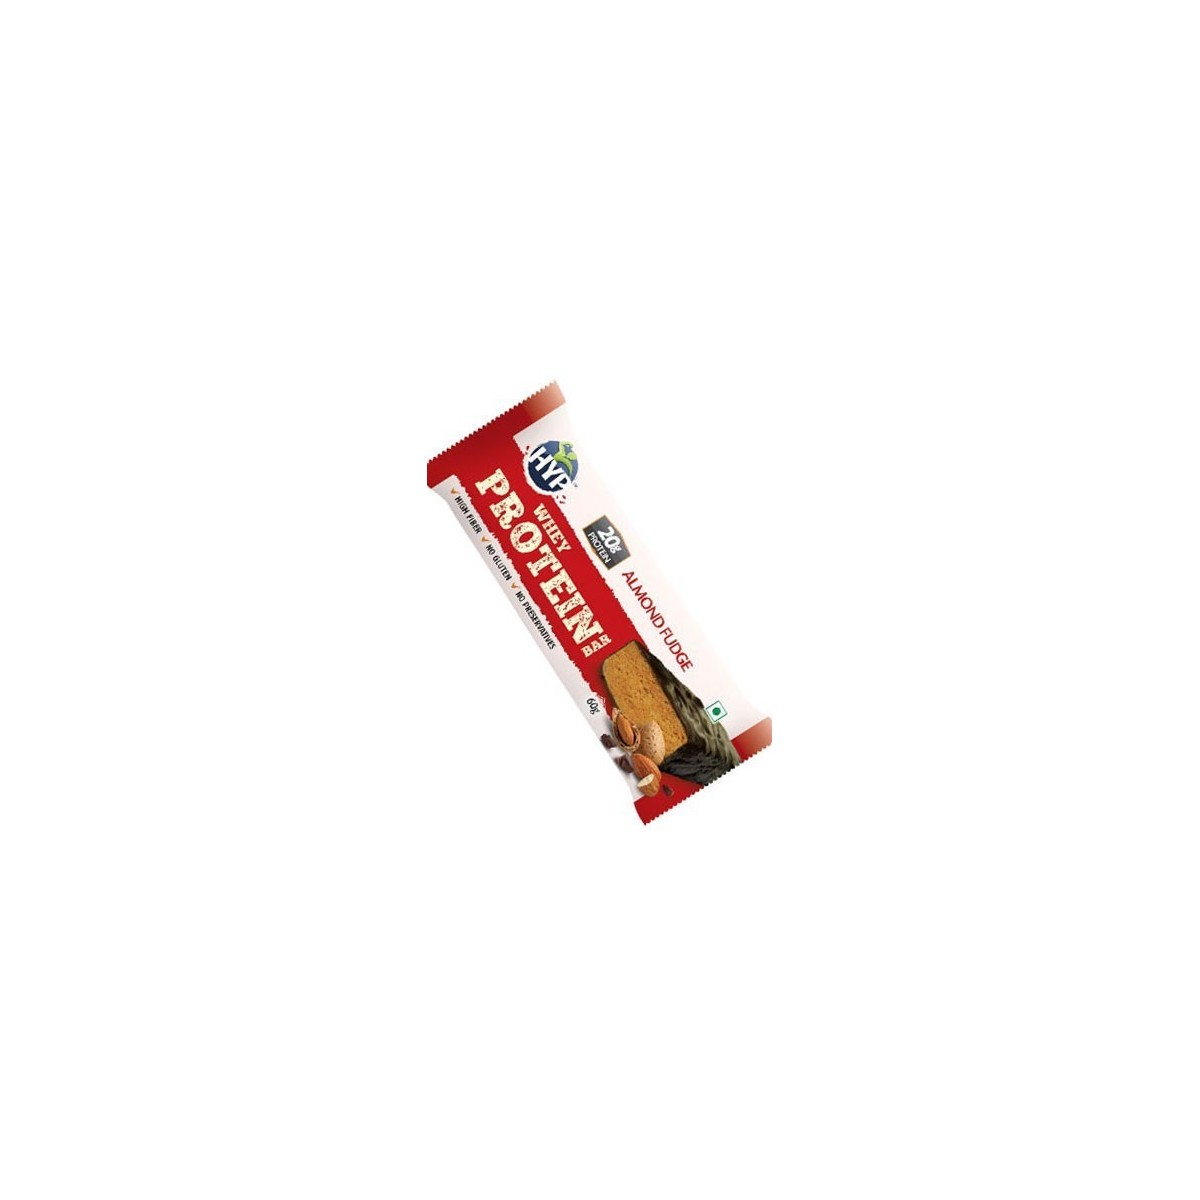 Hyp Whey Protein (Meal Replacement) Bar-Almond Fudge